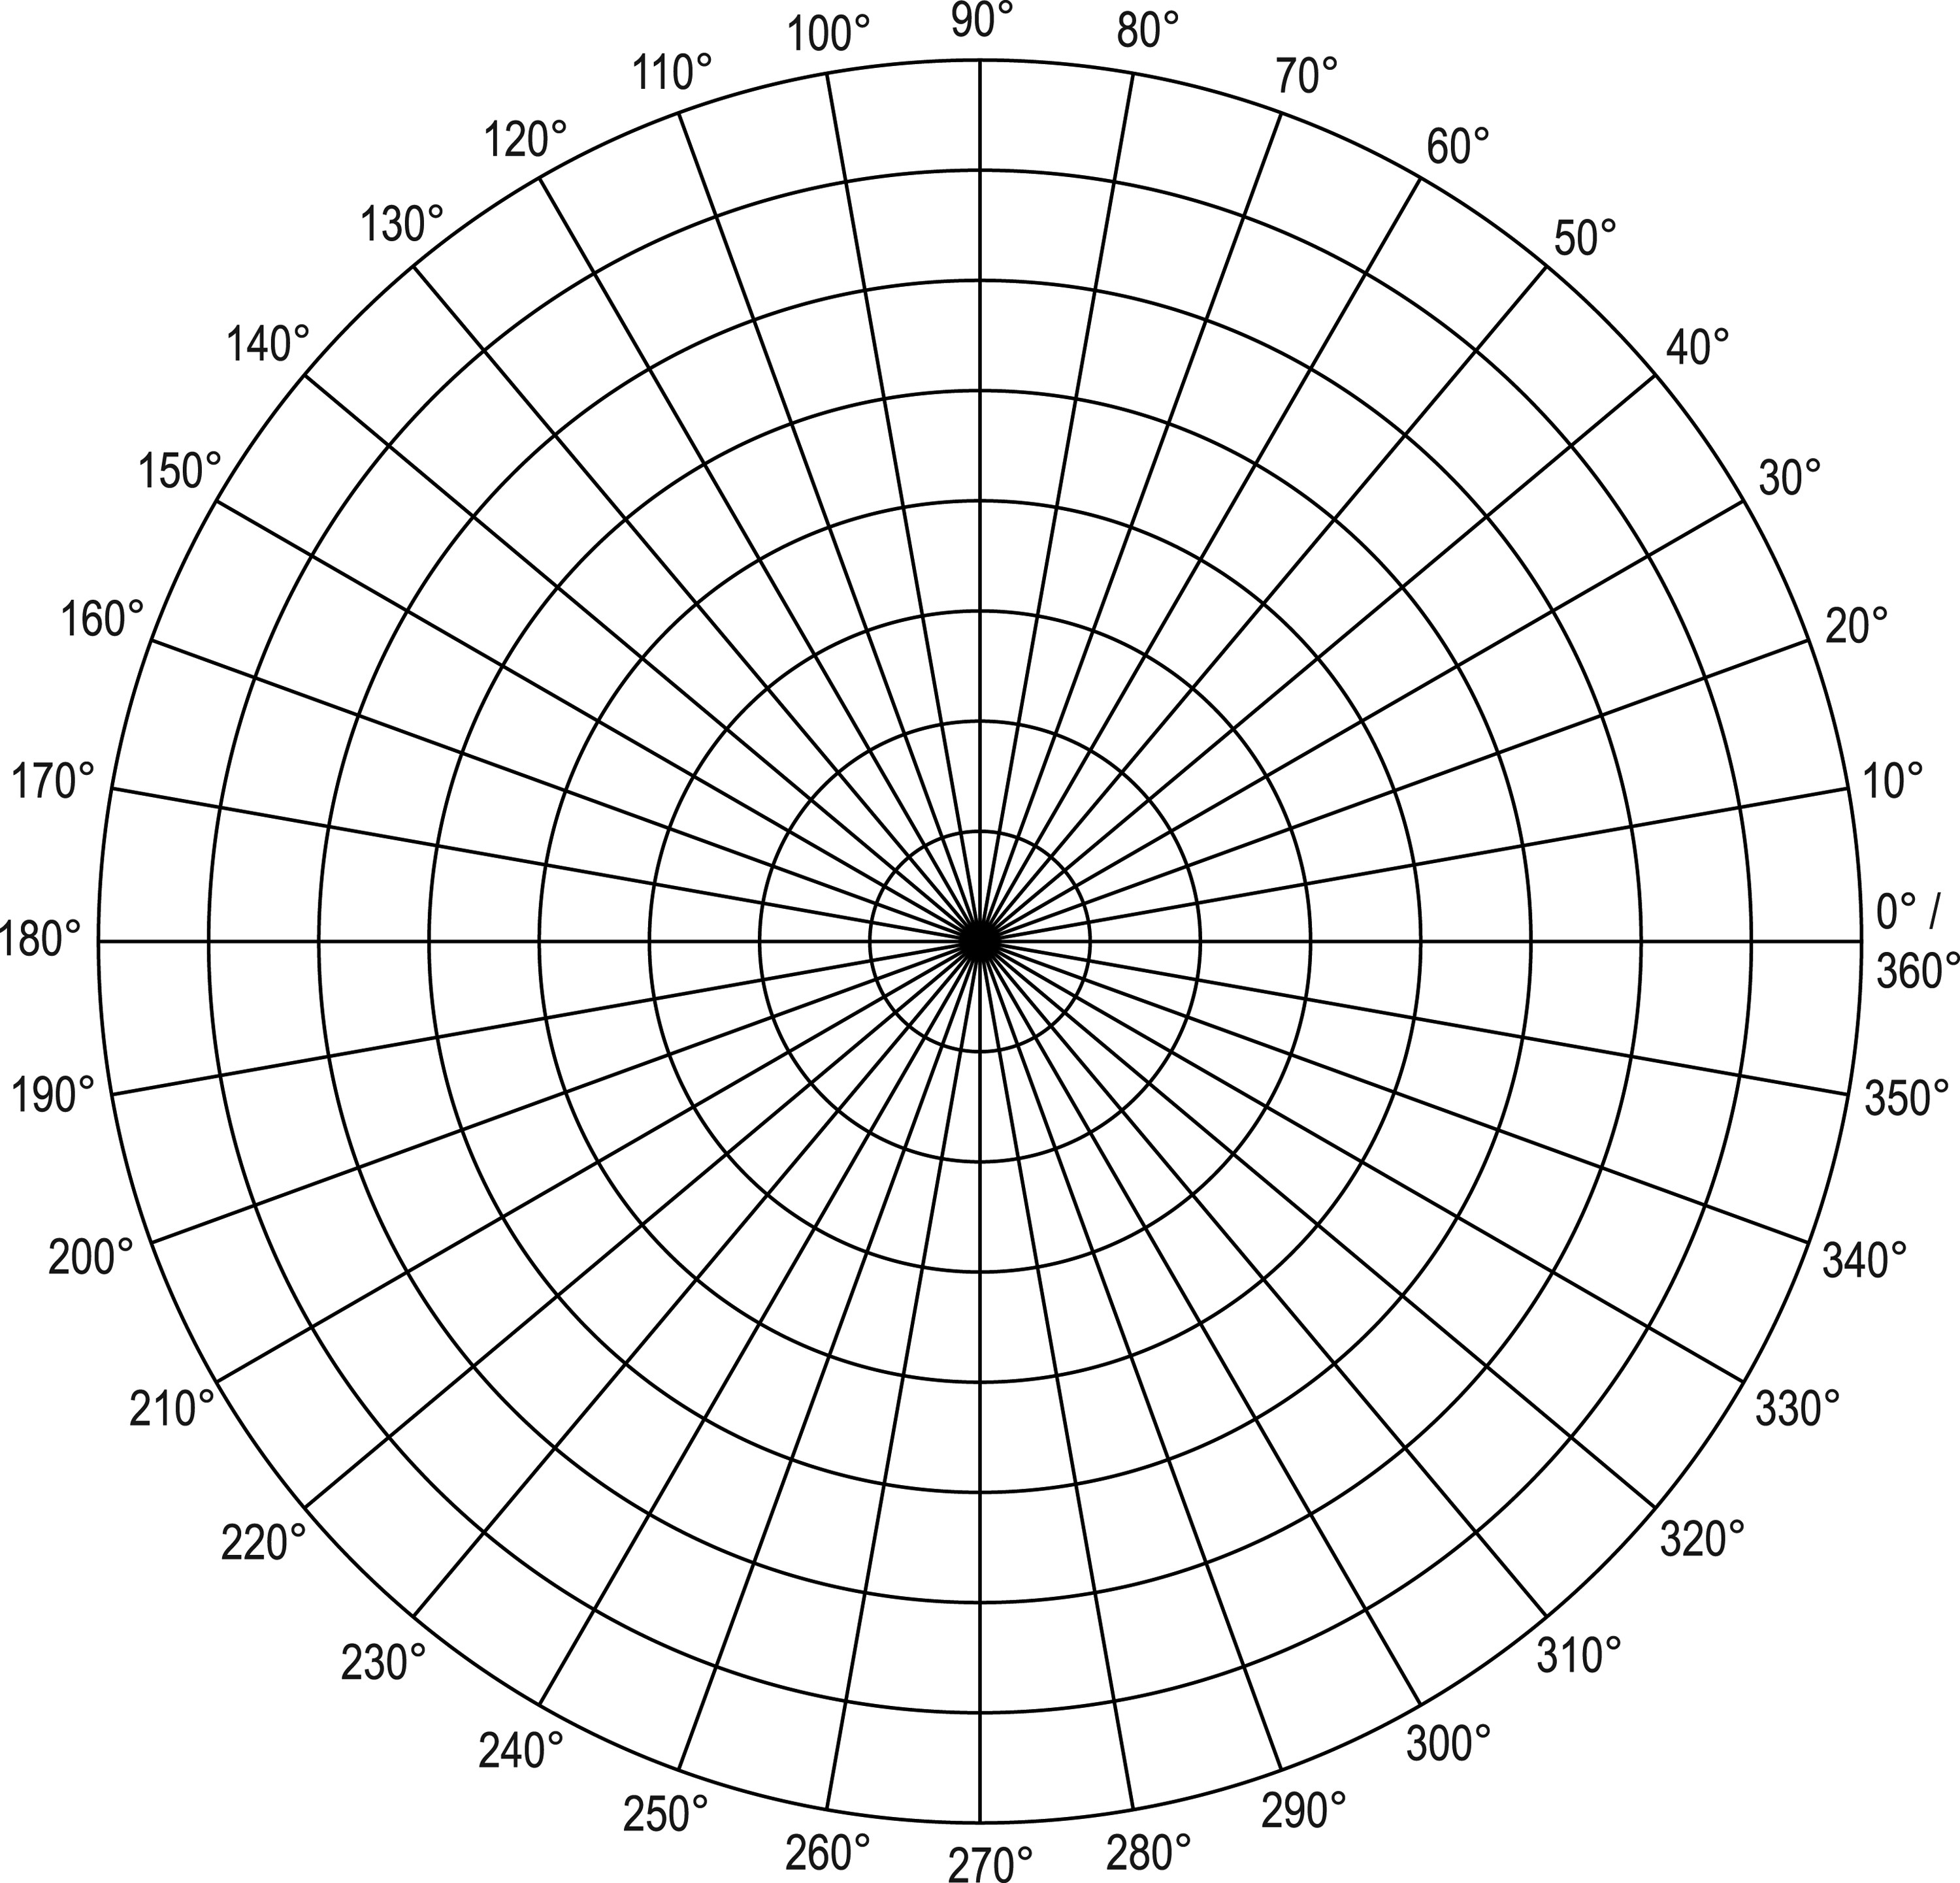 360 degree circle diagram 2003 wrangler radio wiring polar grid in degrees with radius 8 | clipart etc